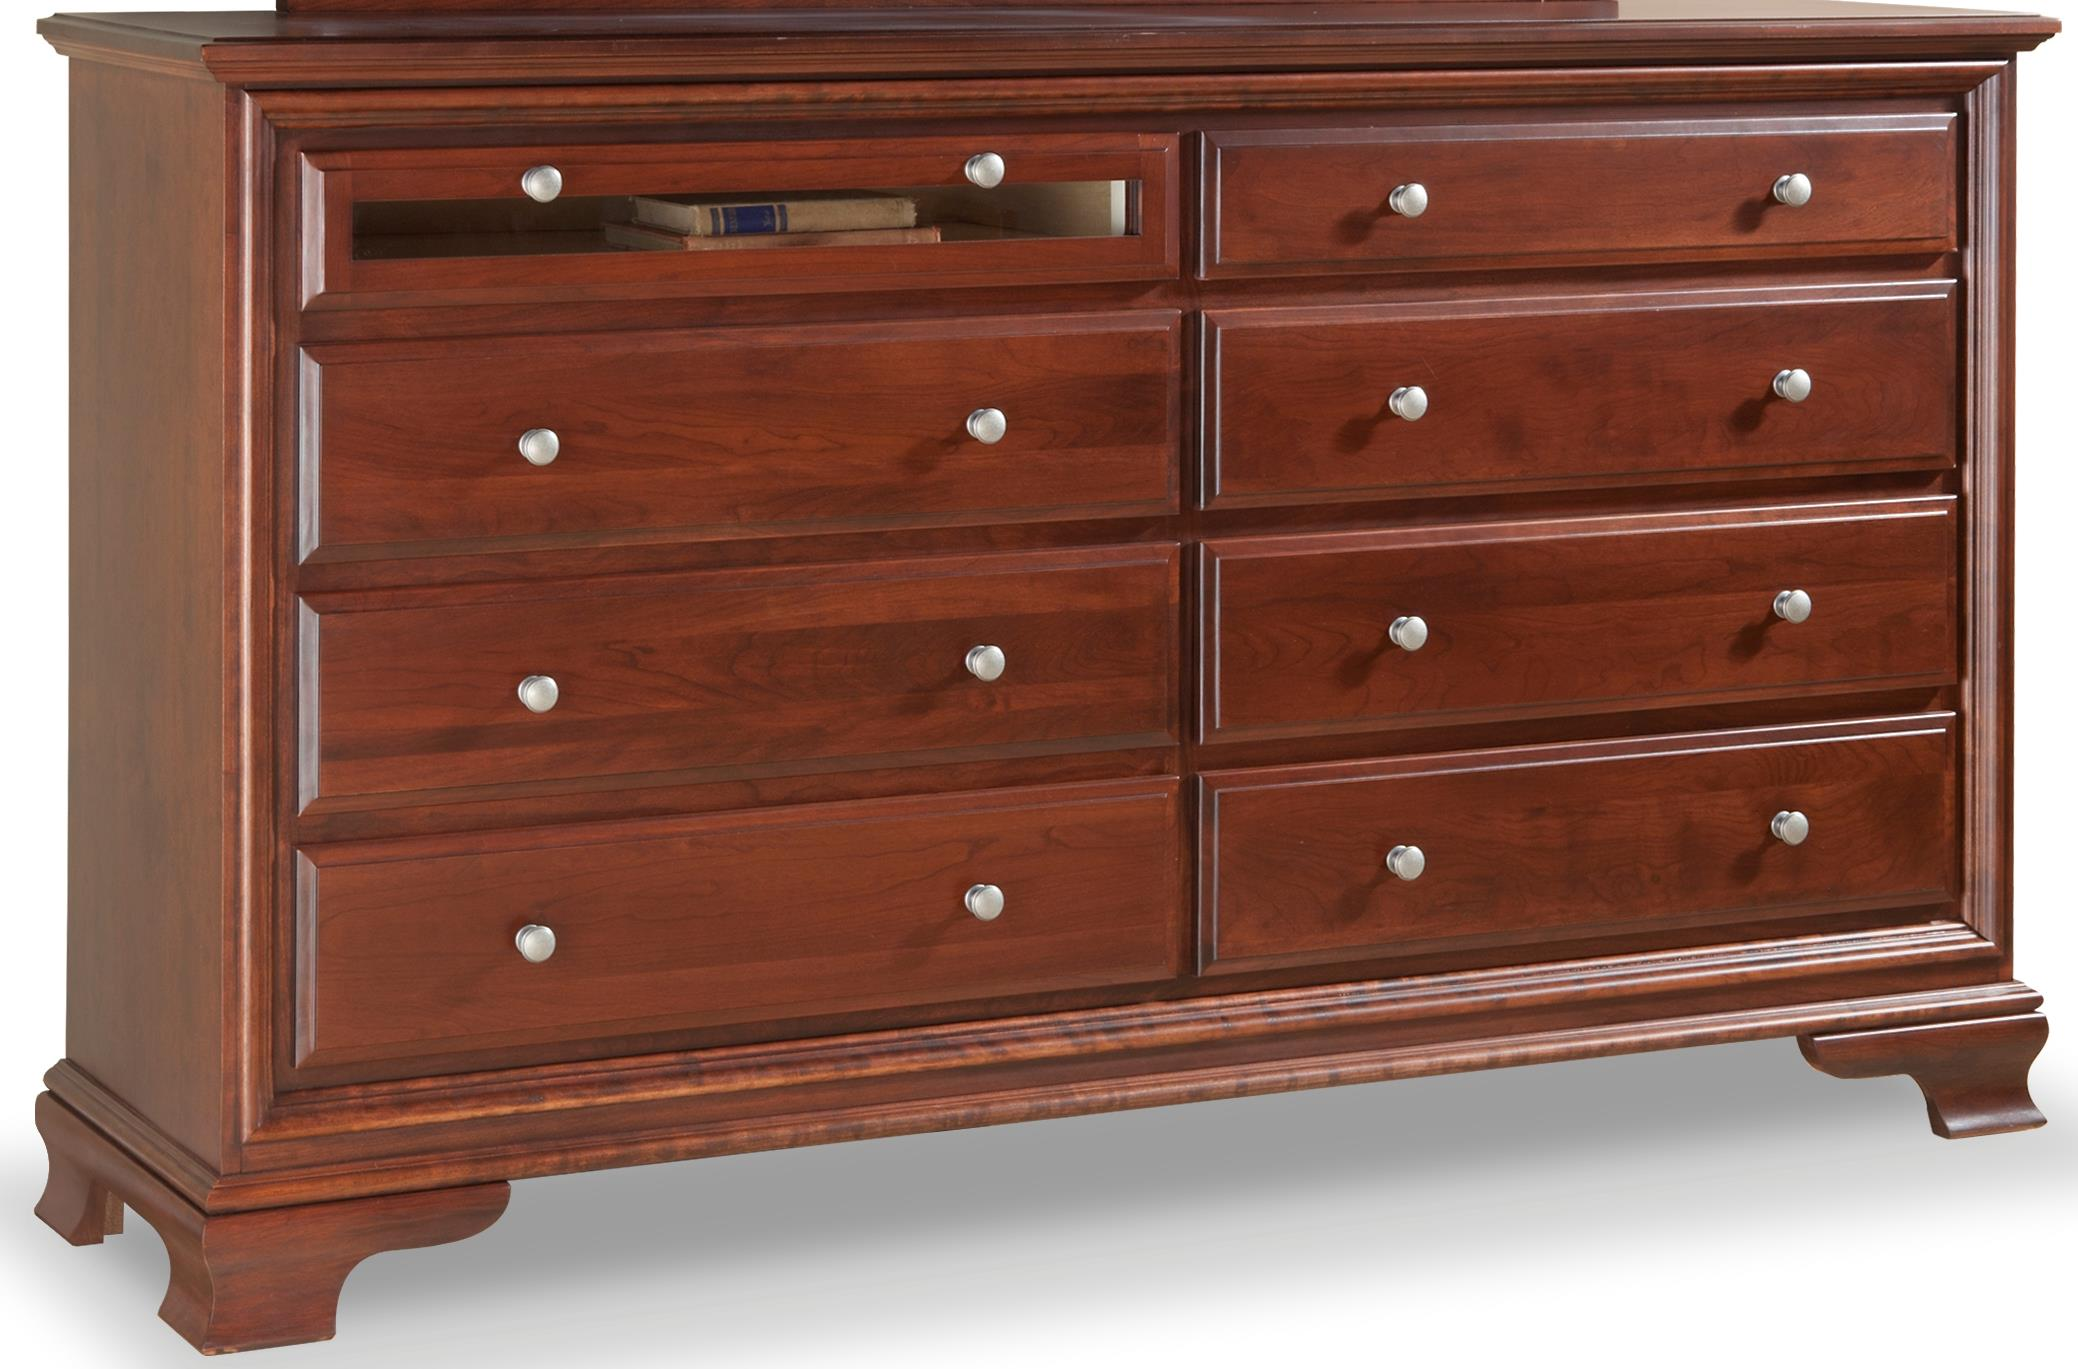 Classic Dresser by Daniels Amish at Virginia Furniture Market